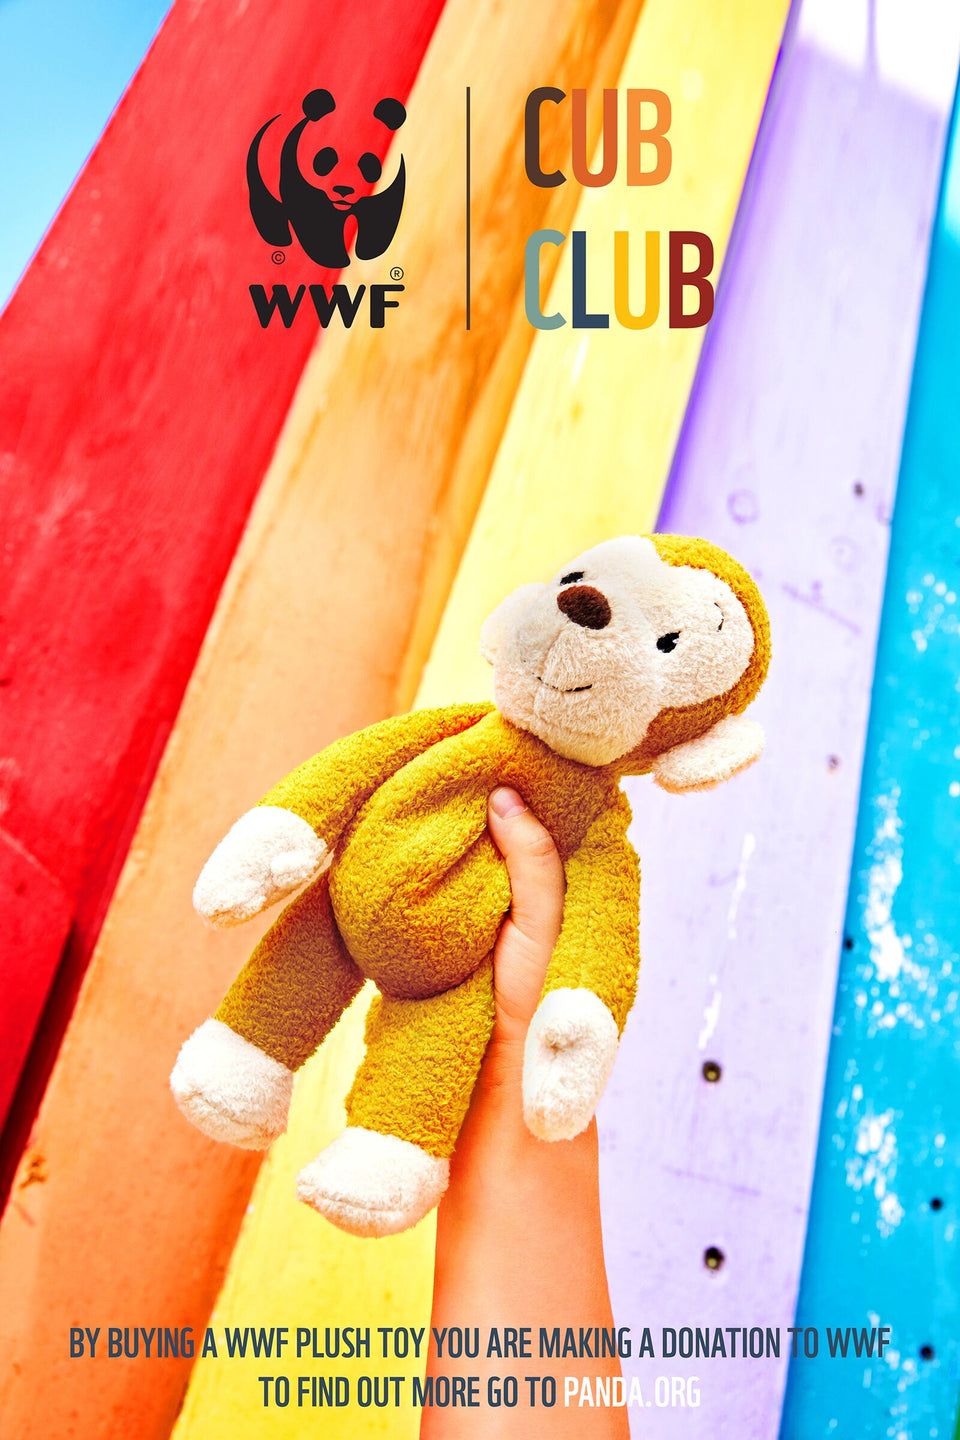 WWF CUB CLUB MAGO THE MONKEY YELLOW 29CM PLUSH SOFT TOY TEDDY